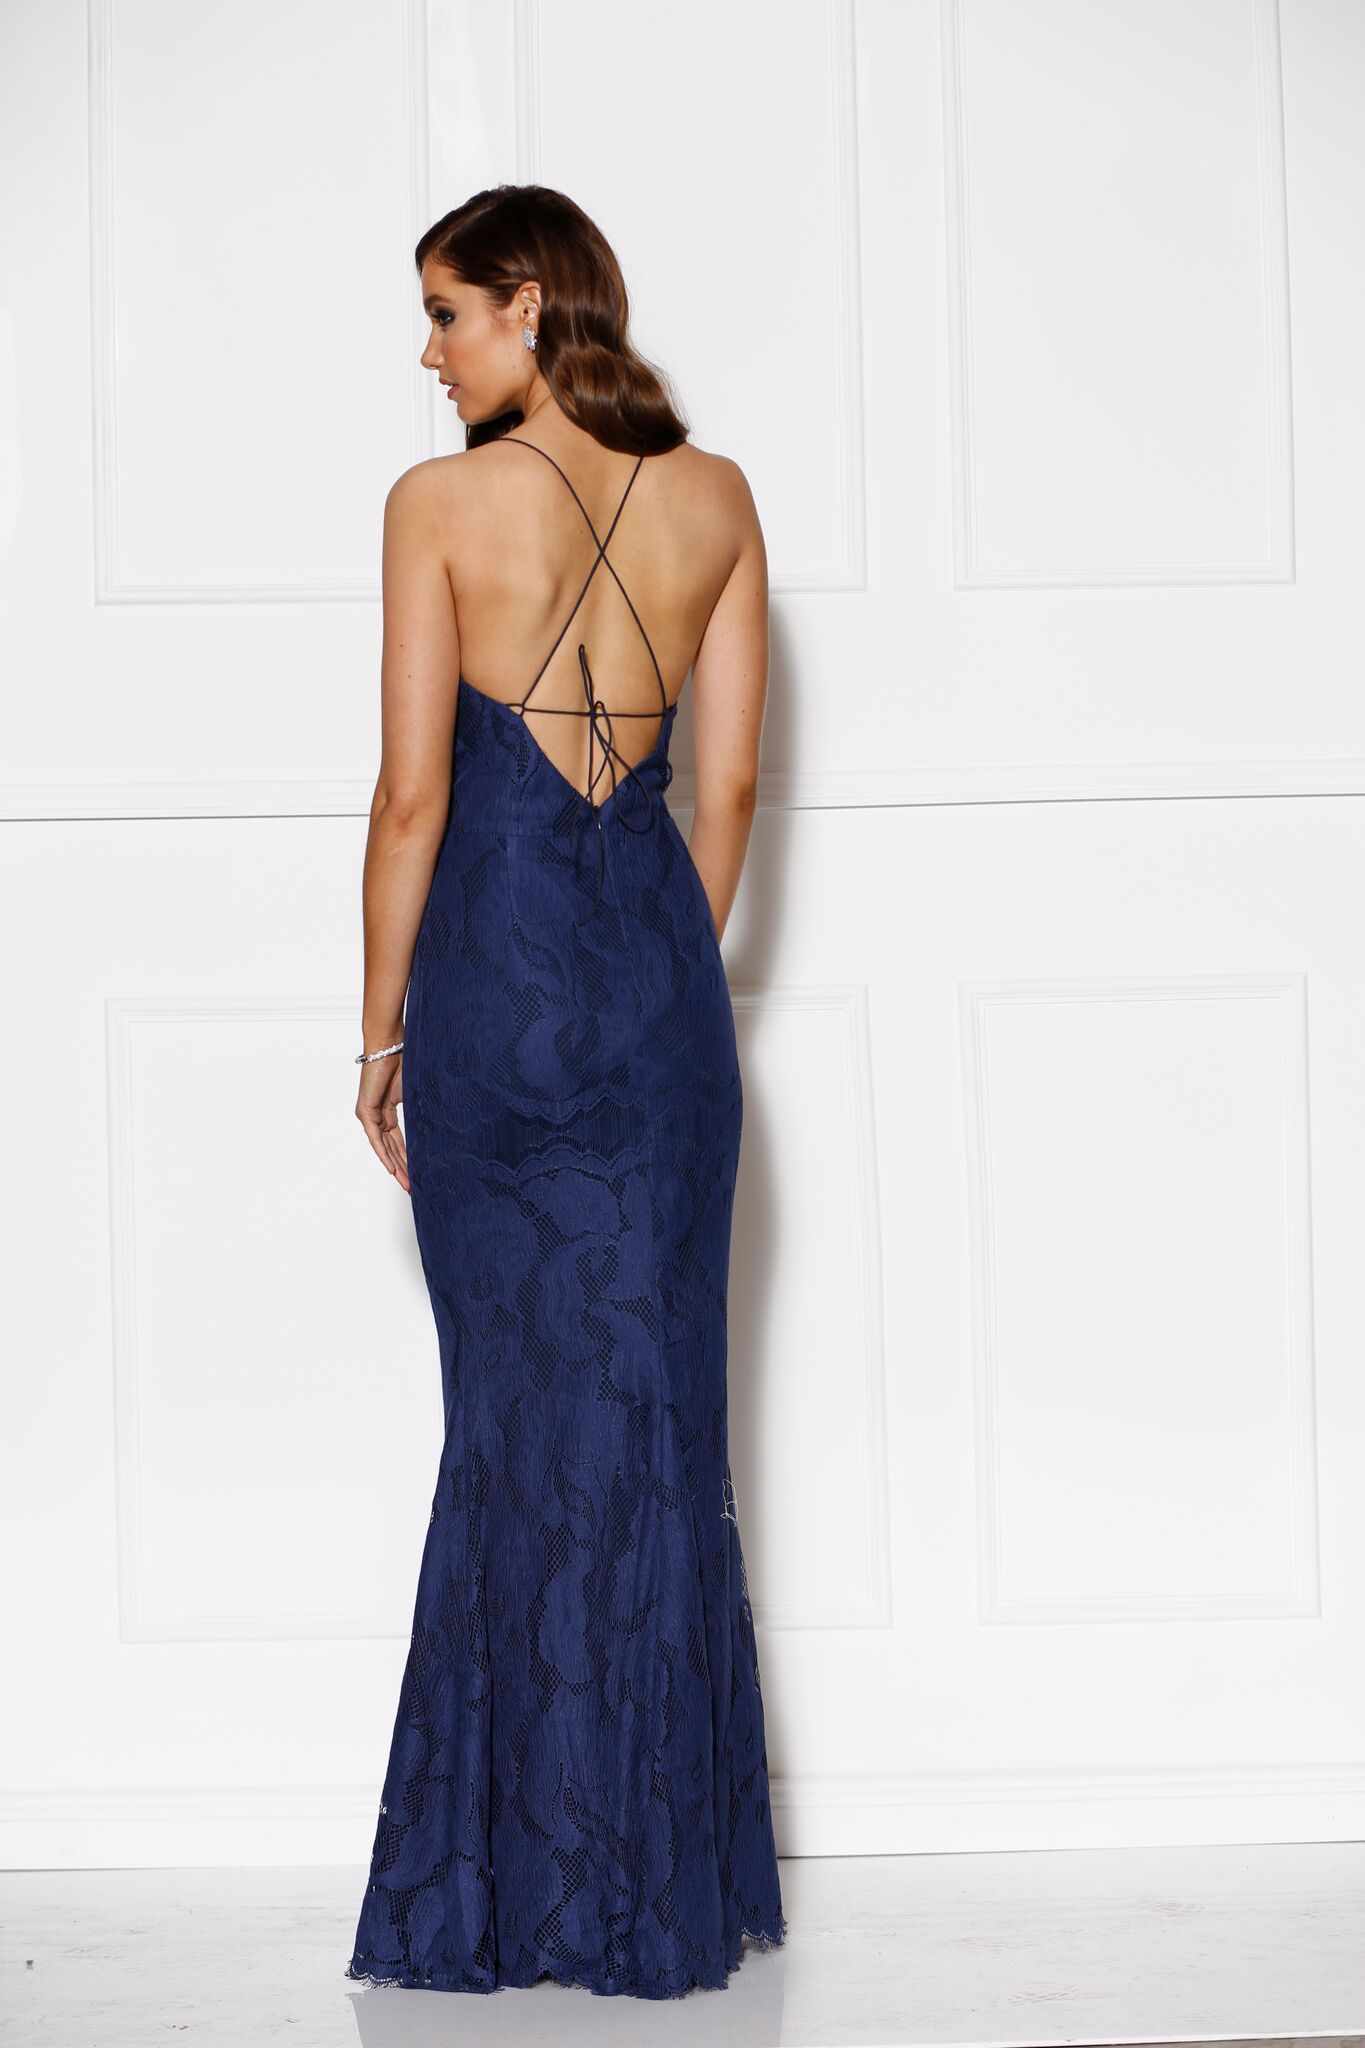 Allure Gown Navy - Size 10 - The Higher Boutique